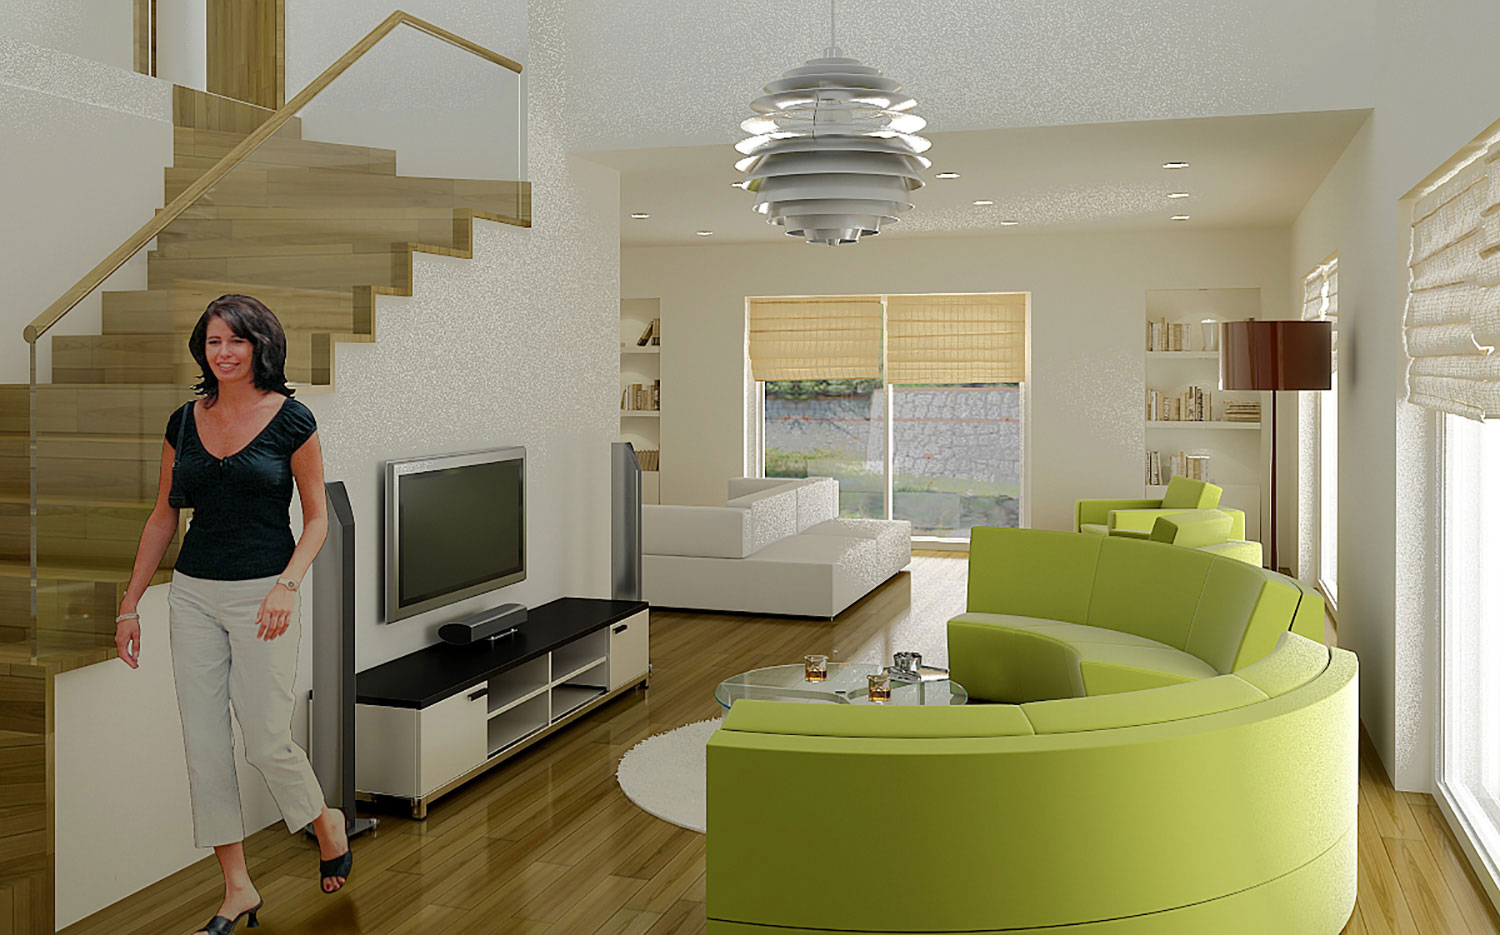 house-interior-design-urla-house-02